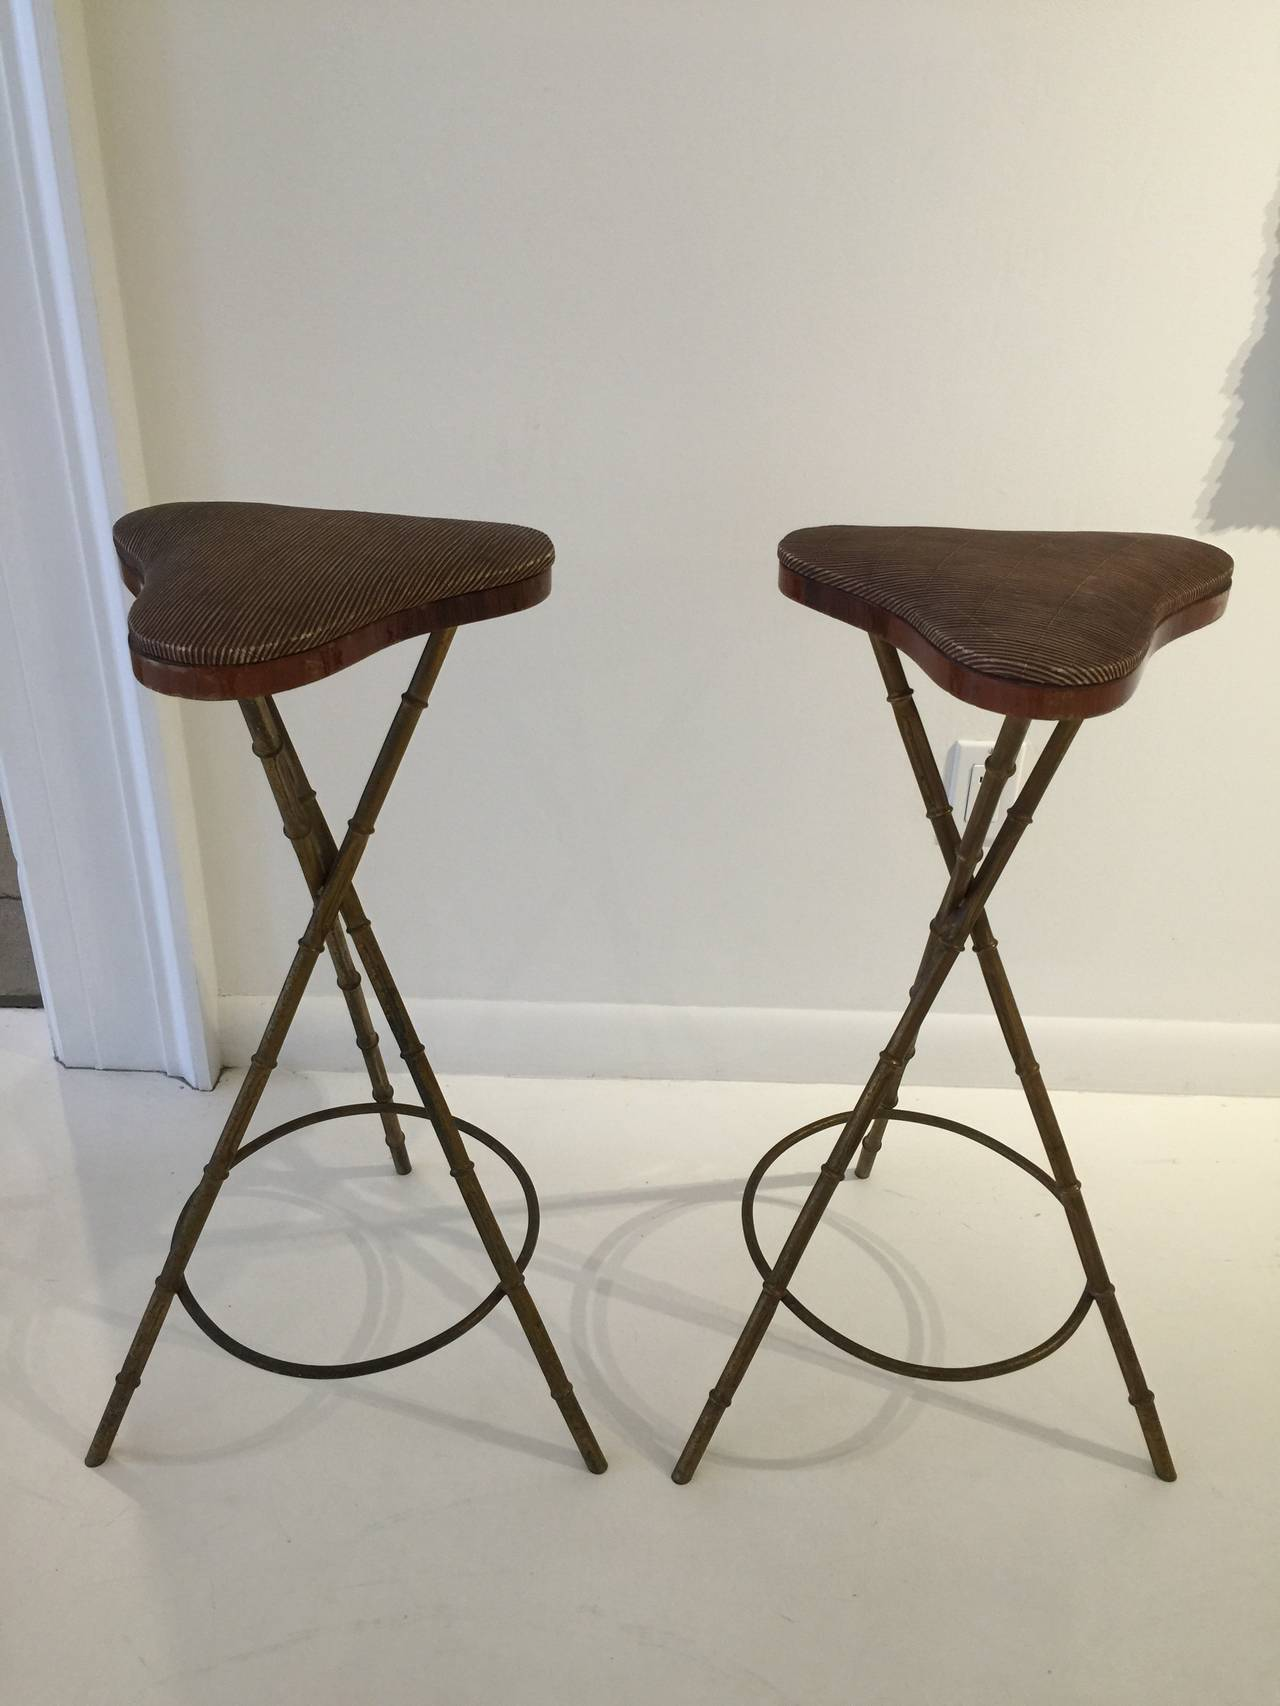 Designed by jacques adnet this pair of gilt metal bamboo style bar stools are all